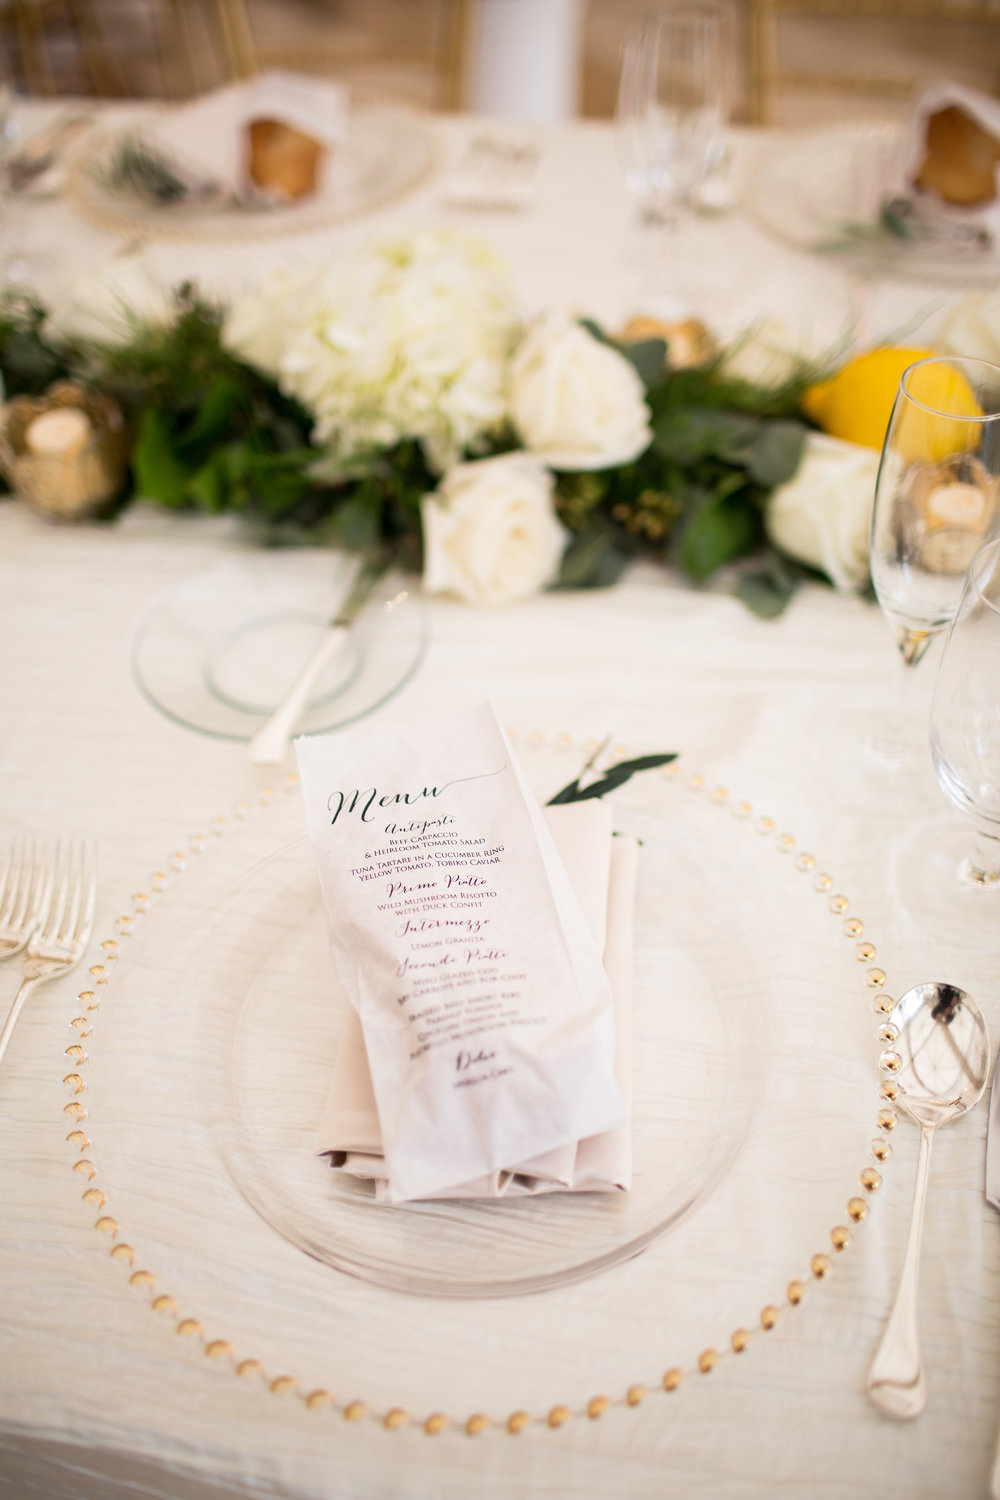 Menu printed on bread bag.   Wedding Planner:  Andrea Eppolito Events   |   Photography  D2 Tuscan Wedding Photography   |  Videography  M Place Productions   |  Venue & Catering:  Bellagio   |  Floral & Decor:  Destinations by Design    |  Lighting:  LED Unplugged   |  Music: Classical Entertainment &  DJ Mike Fox   |  Hair & Make Up:  Amelia C & Co